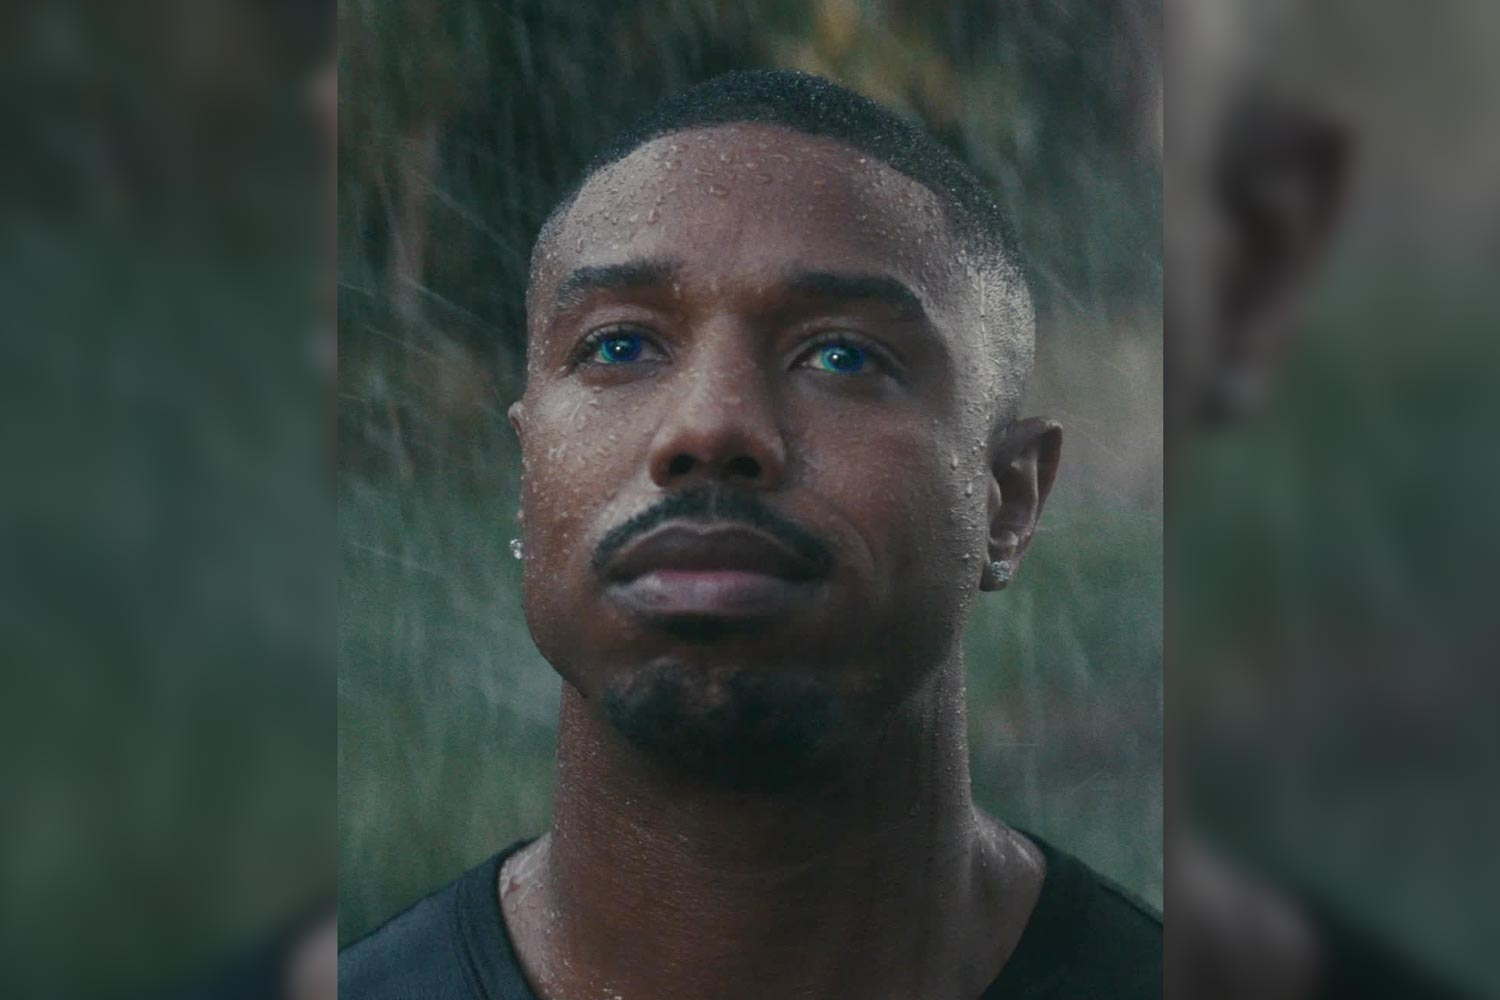 Michael B. Jordan and Wayne's World featured in Super Bowl teasers and brands prepare for Black History Month: Monday Wake-Up Call